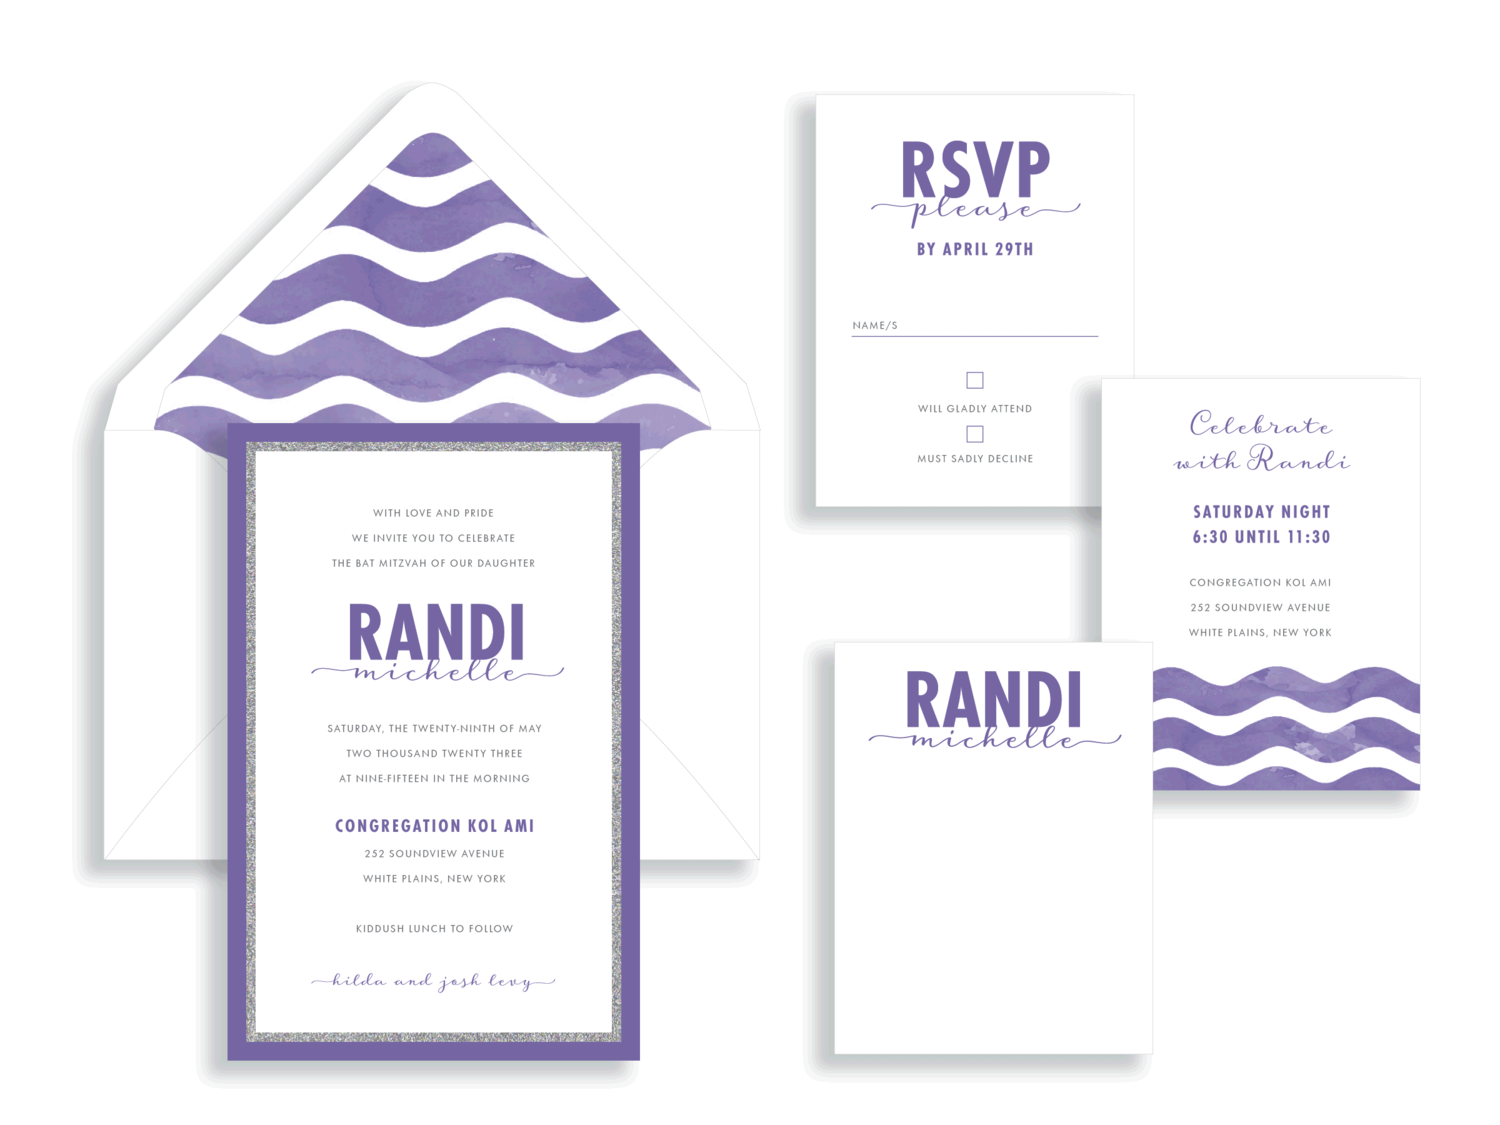 Randi purple and silver bat mitzvah invitation in the Washington DC Metro area from Staccato.  Customize colors and layers!